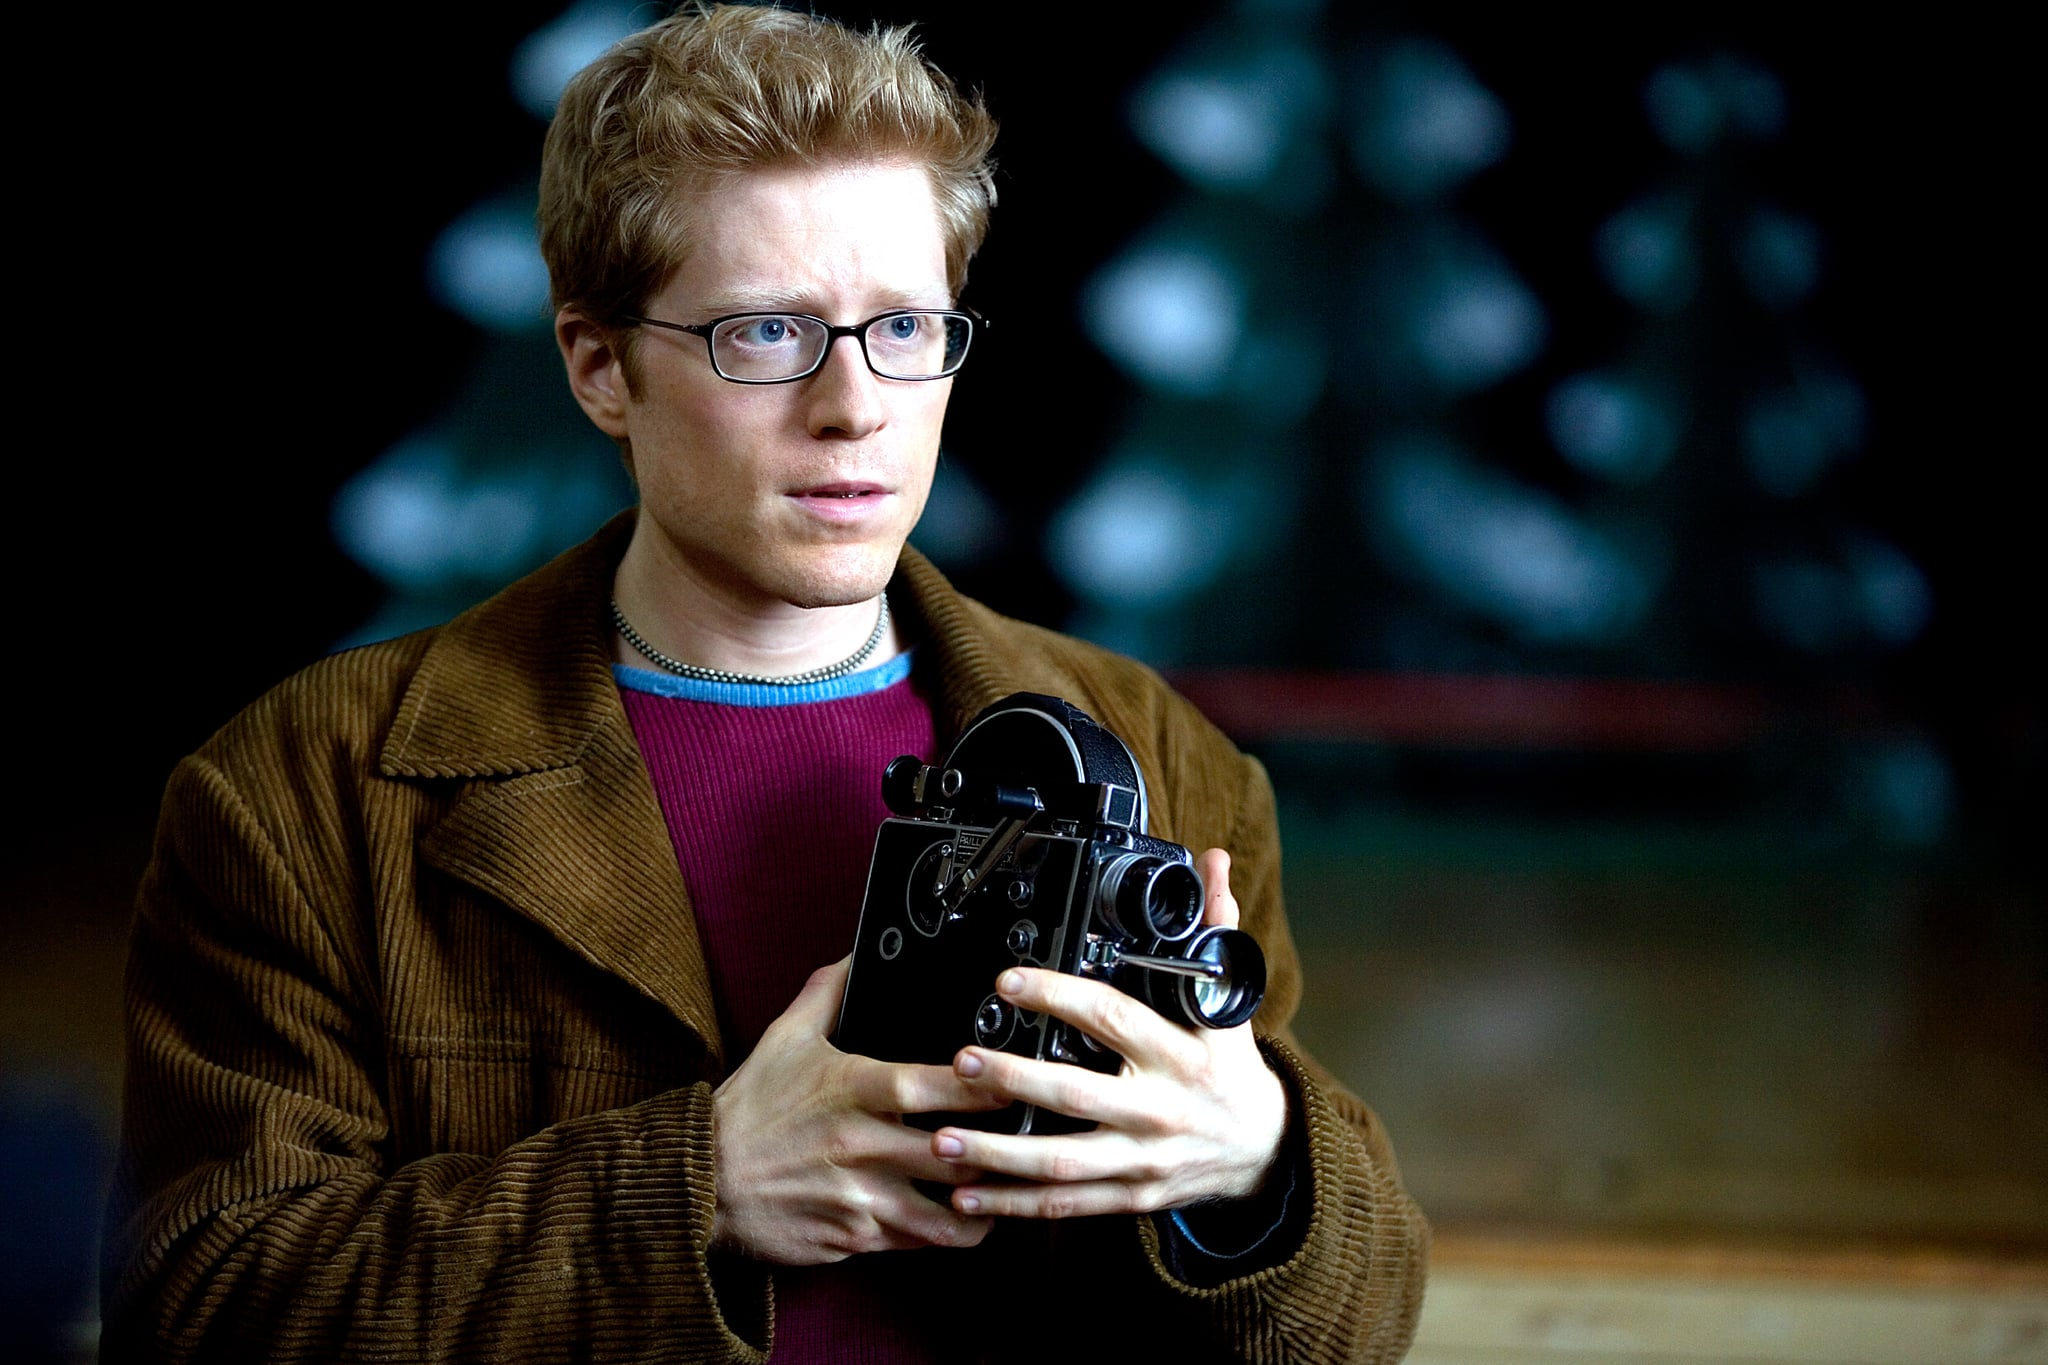 RENT, Anthony Rapp, 2005, (c) Columbia/courtesy Everett Collection